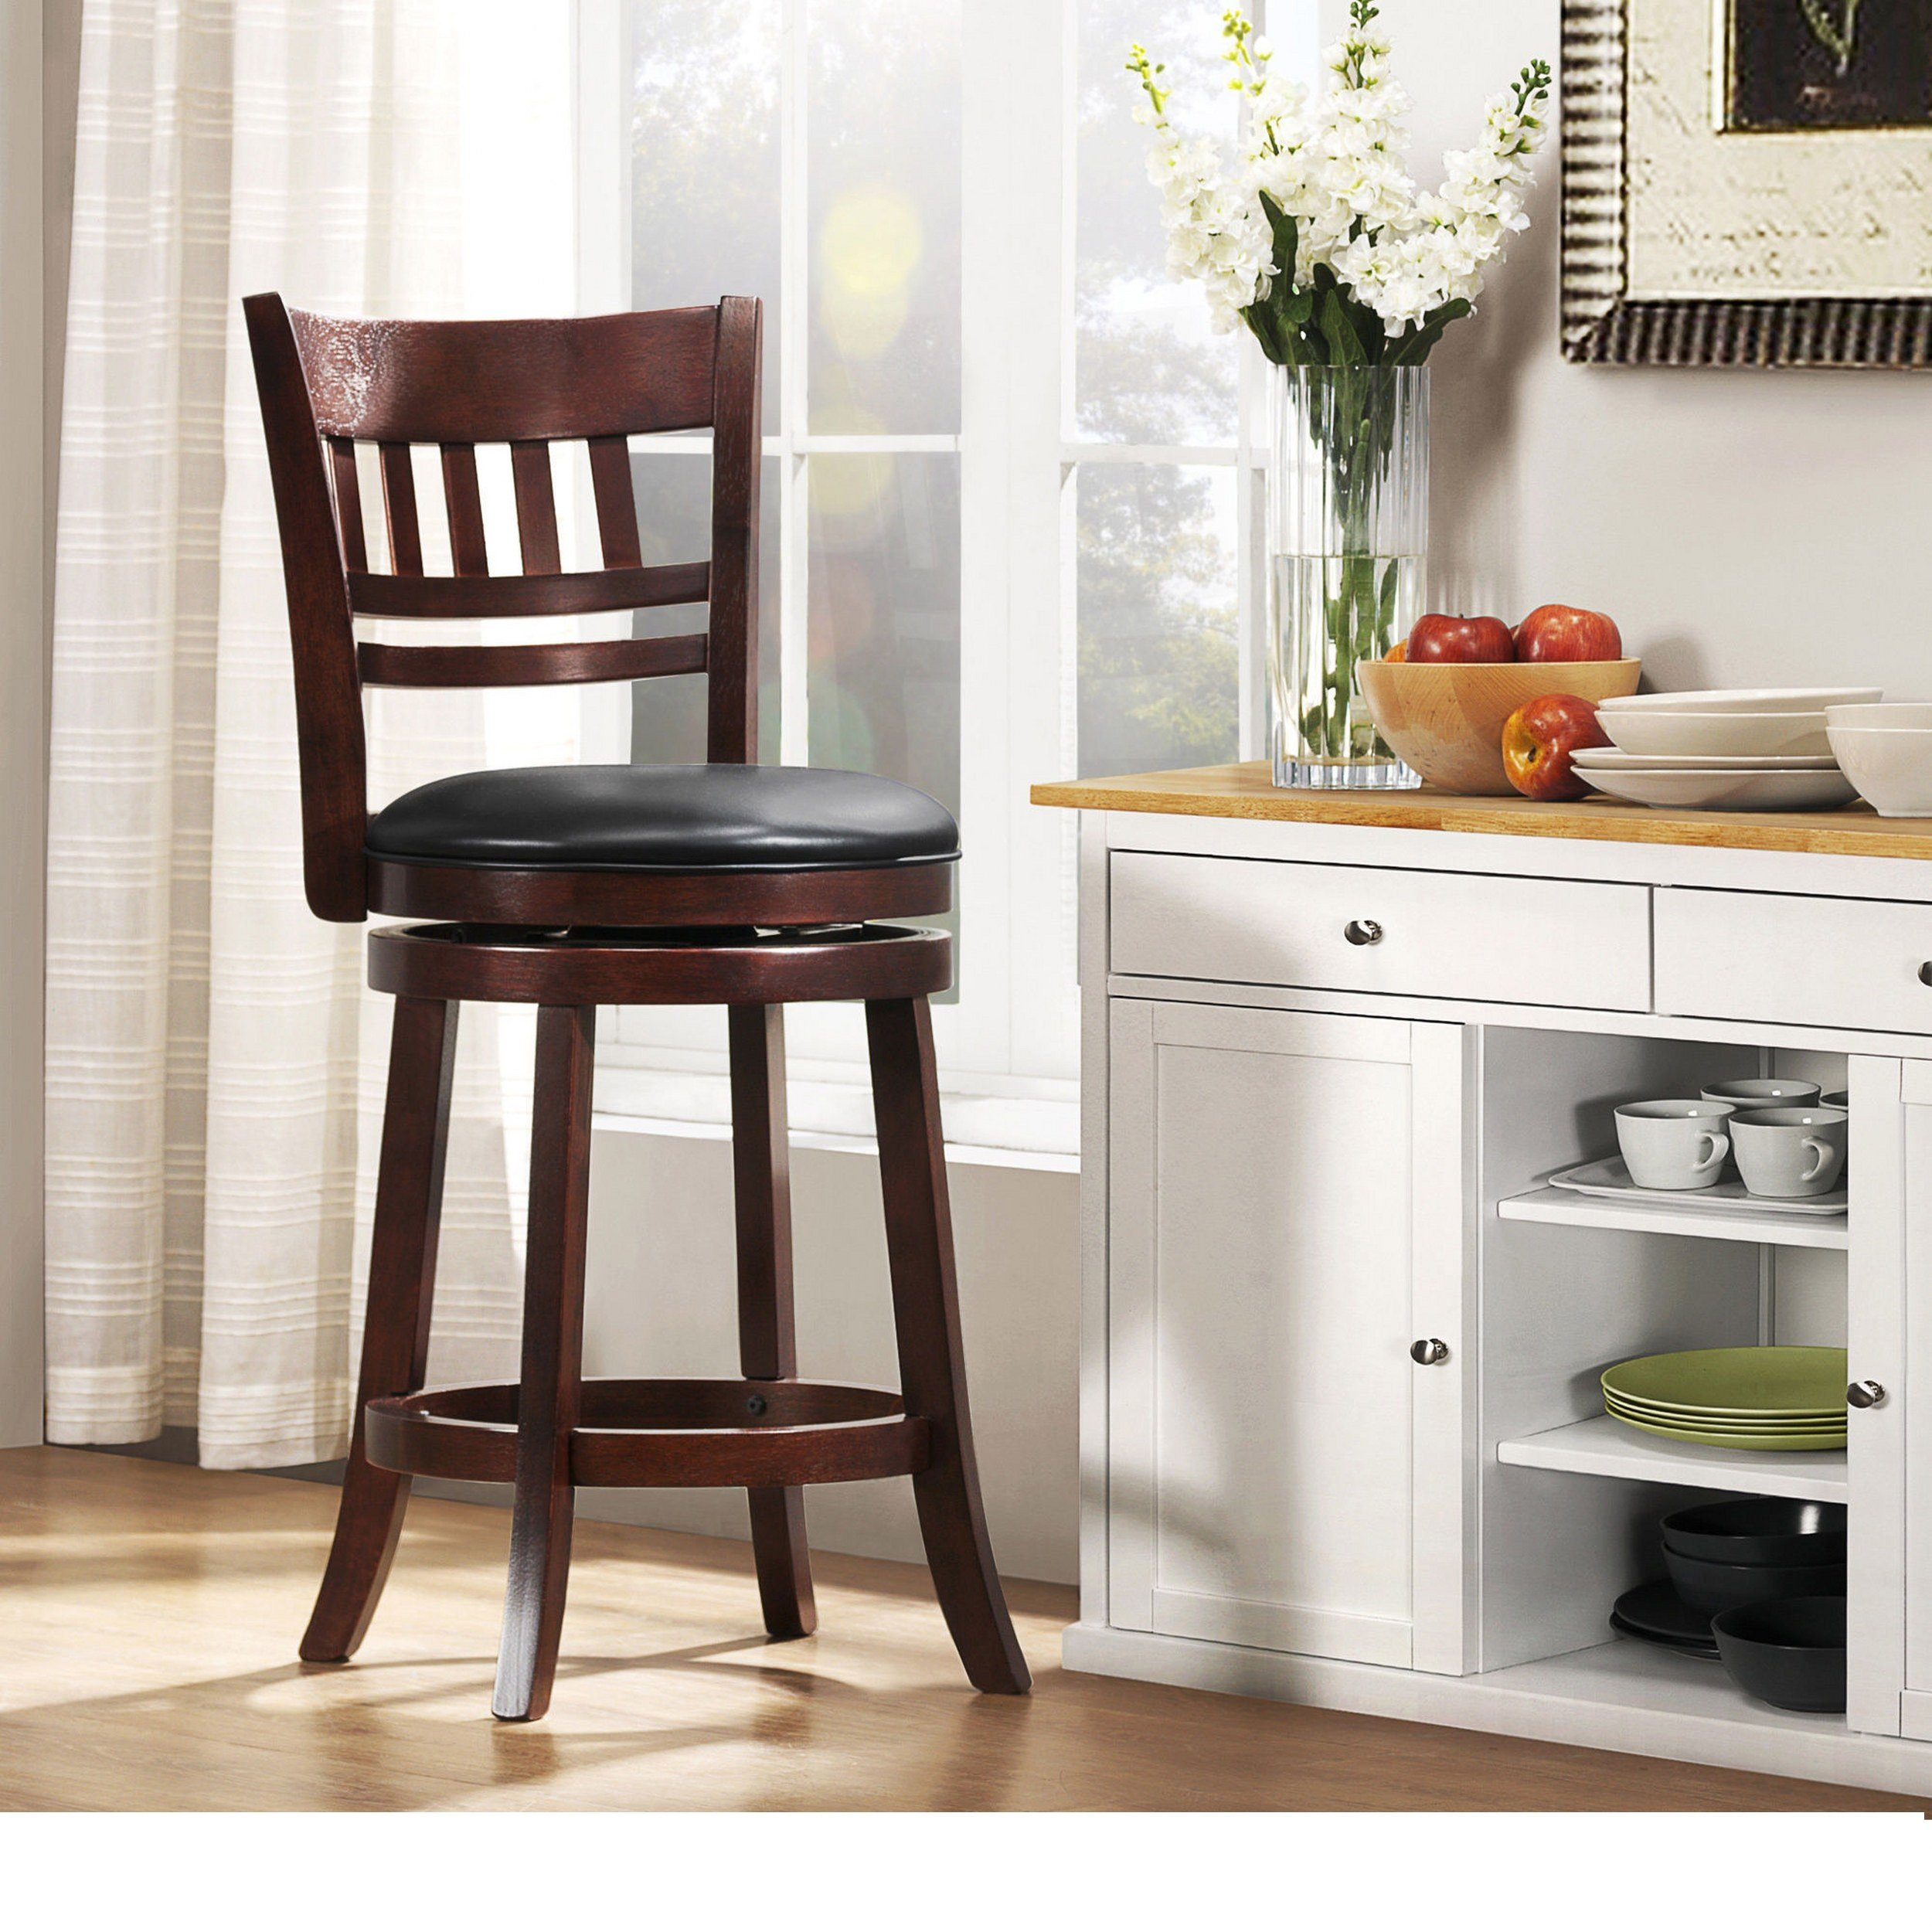 Modern Cherry Kitchen Stool Counter Height with Window Back, Black Faux Leather Seat and Swivel - Includes Modhaus Living Pen (Window Back)